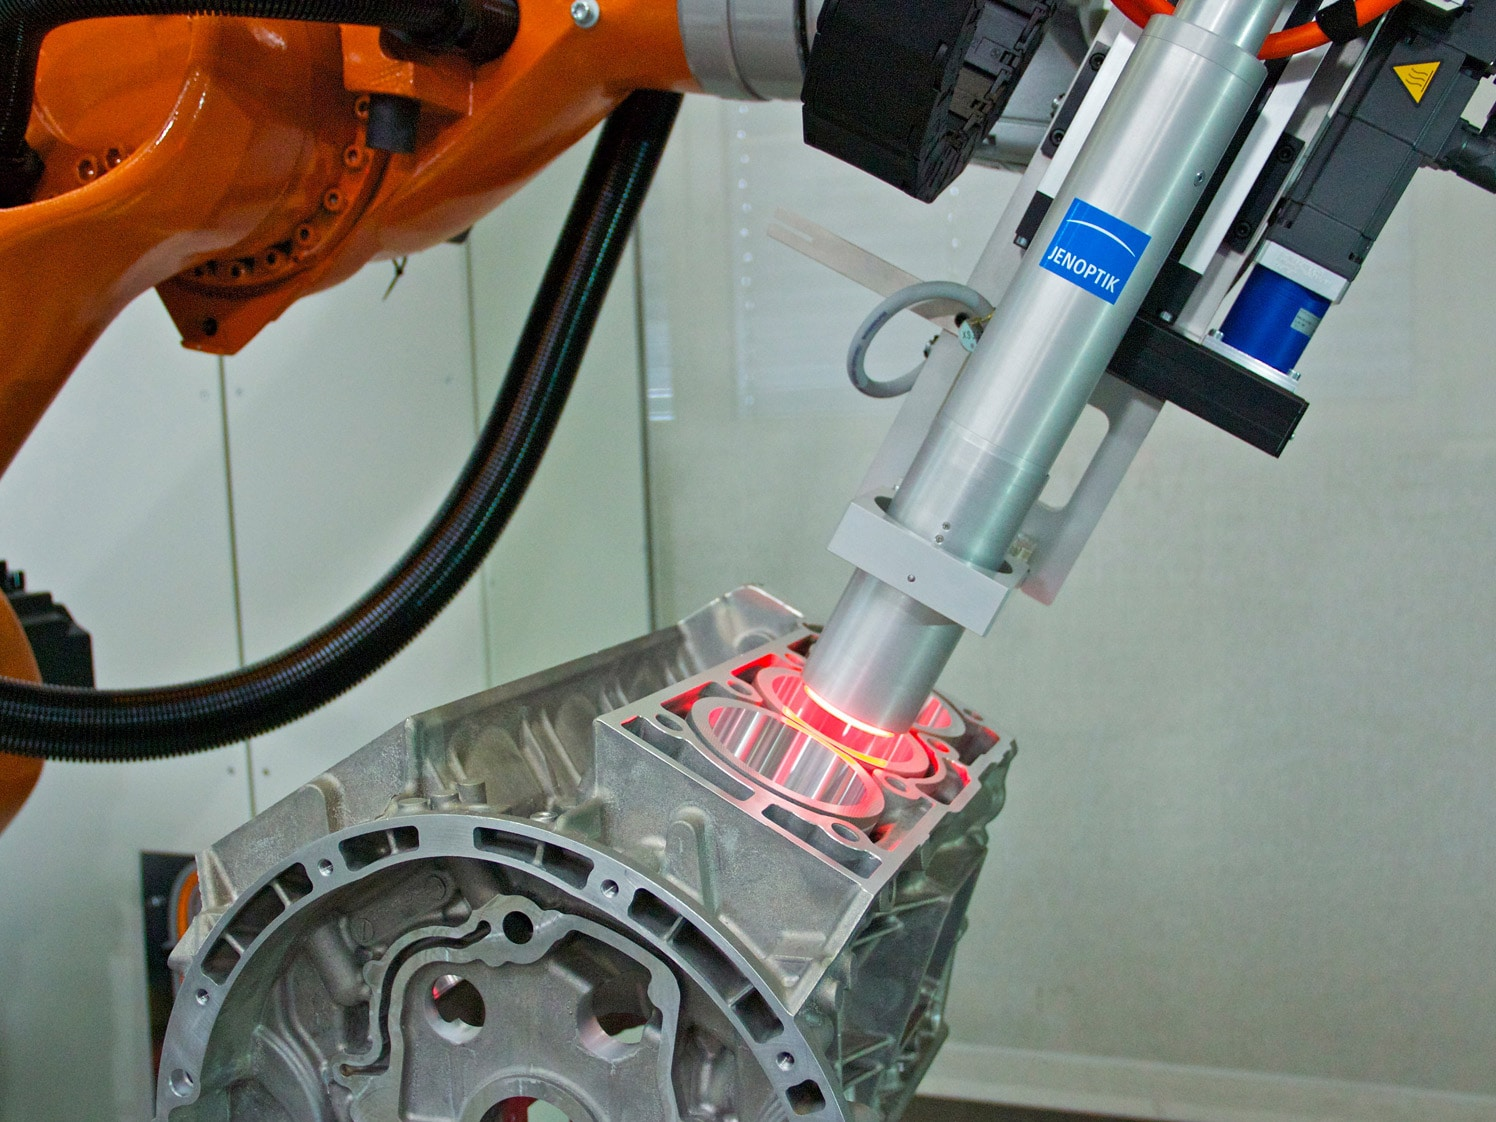 Hommel-Etamic IPS B100 - Cylinder bore inspection with flexible robot solution